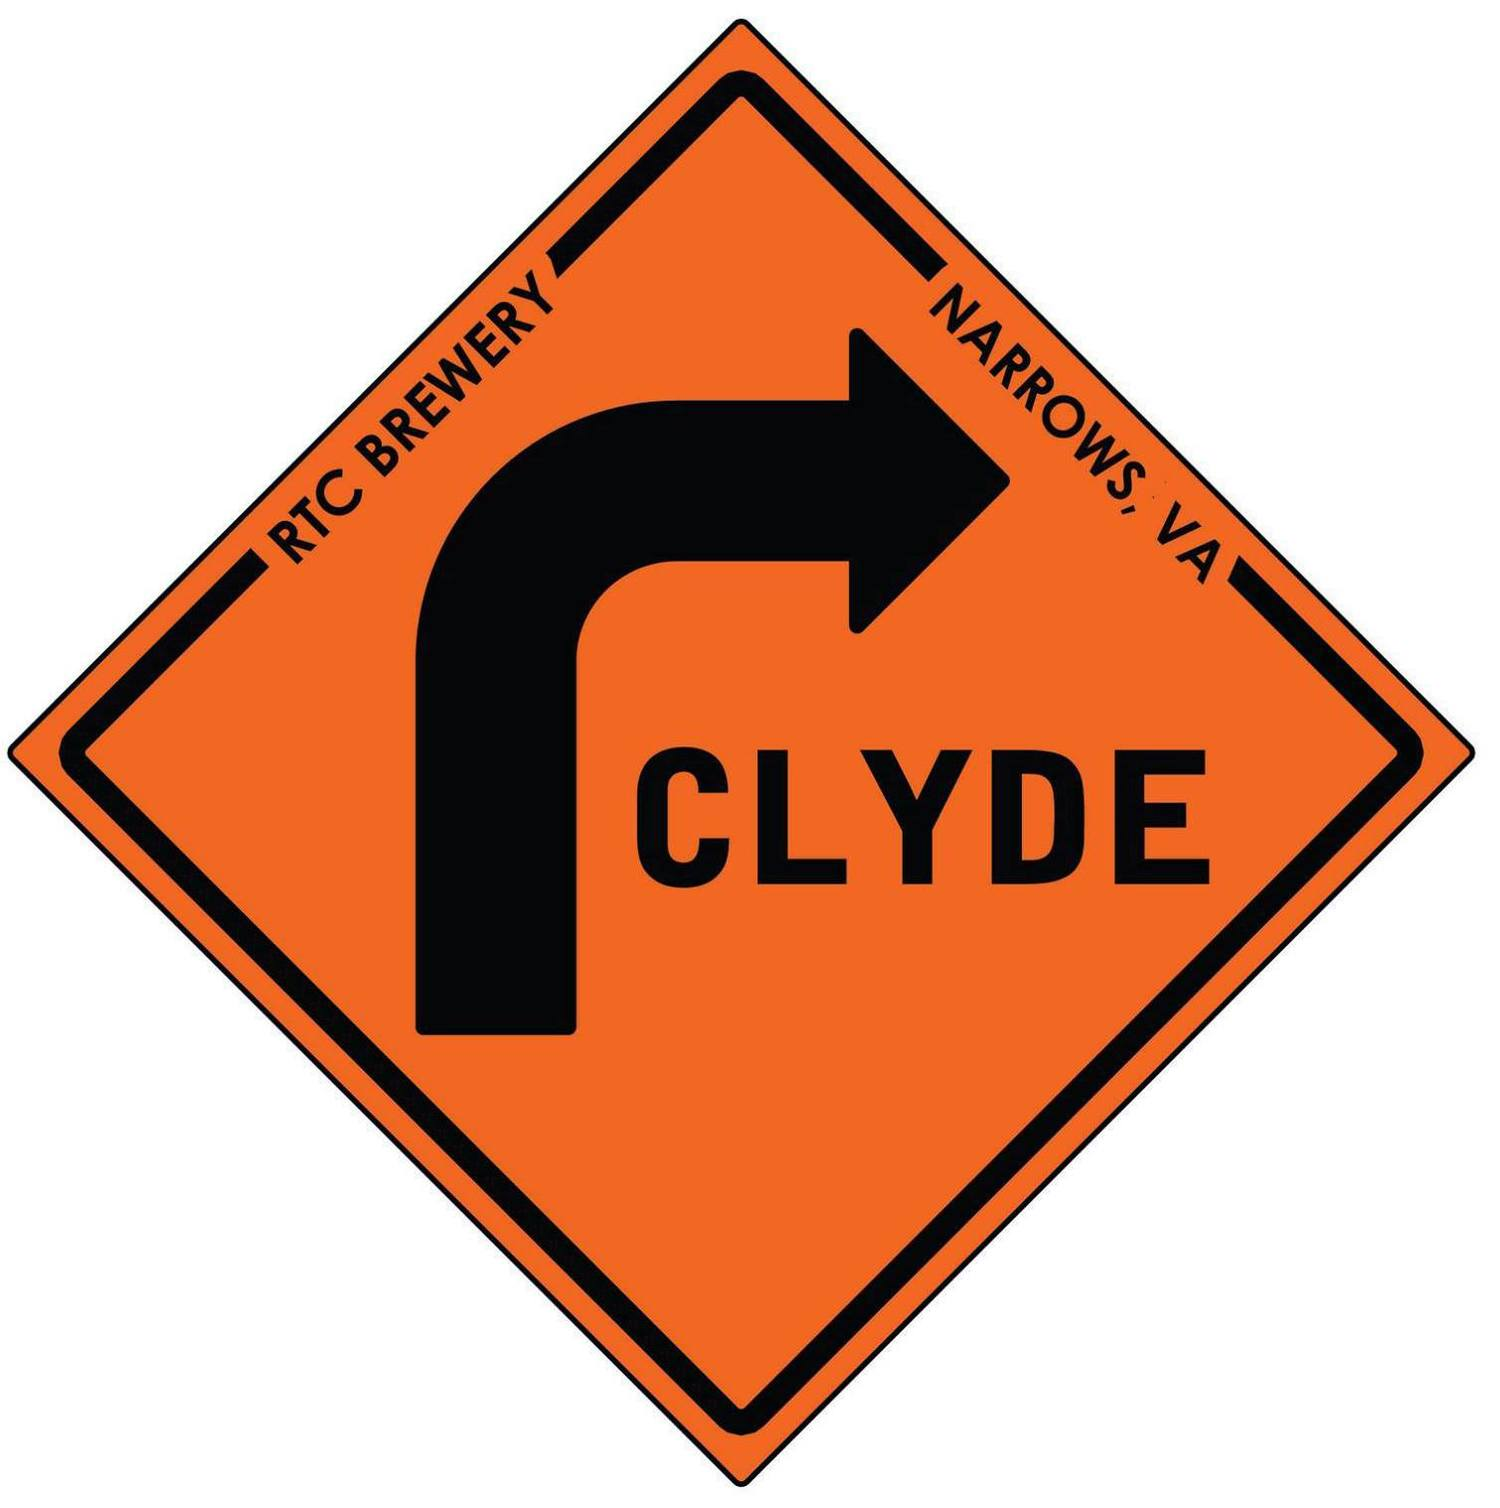 Right Turn, Clyde